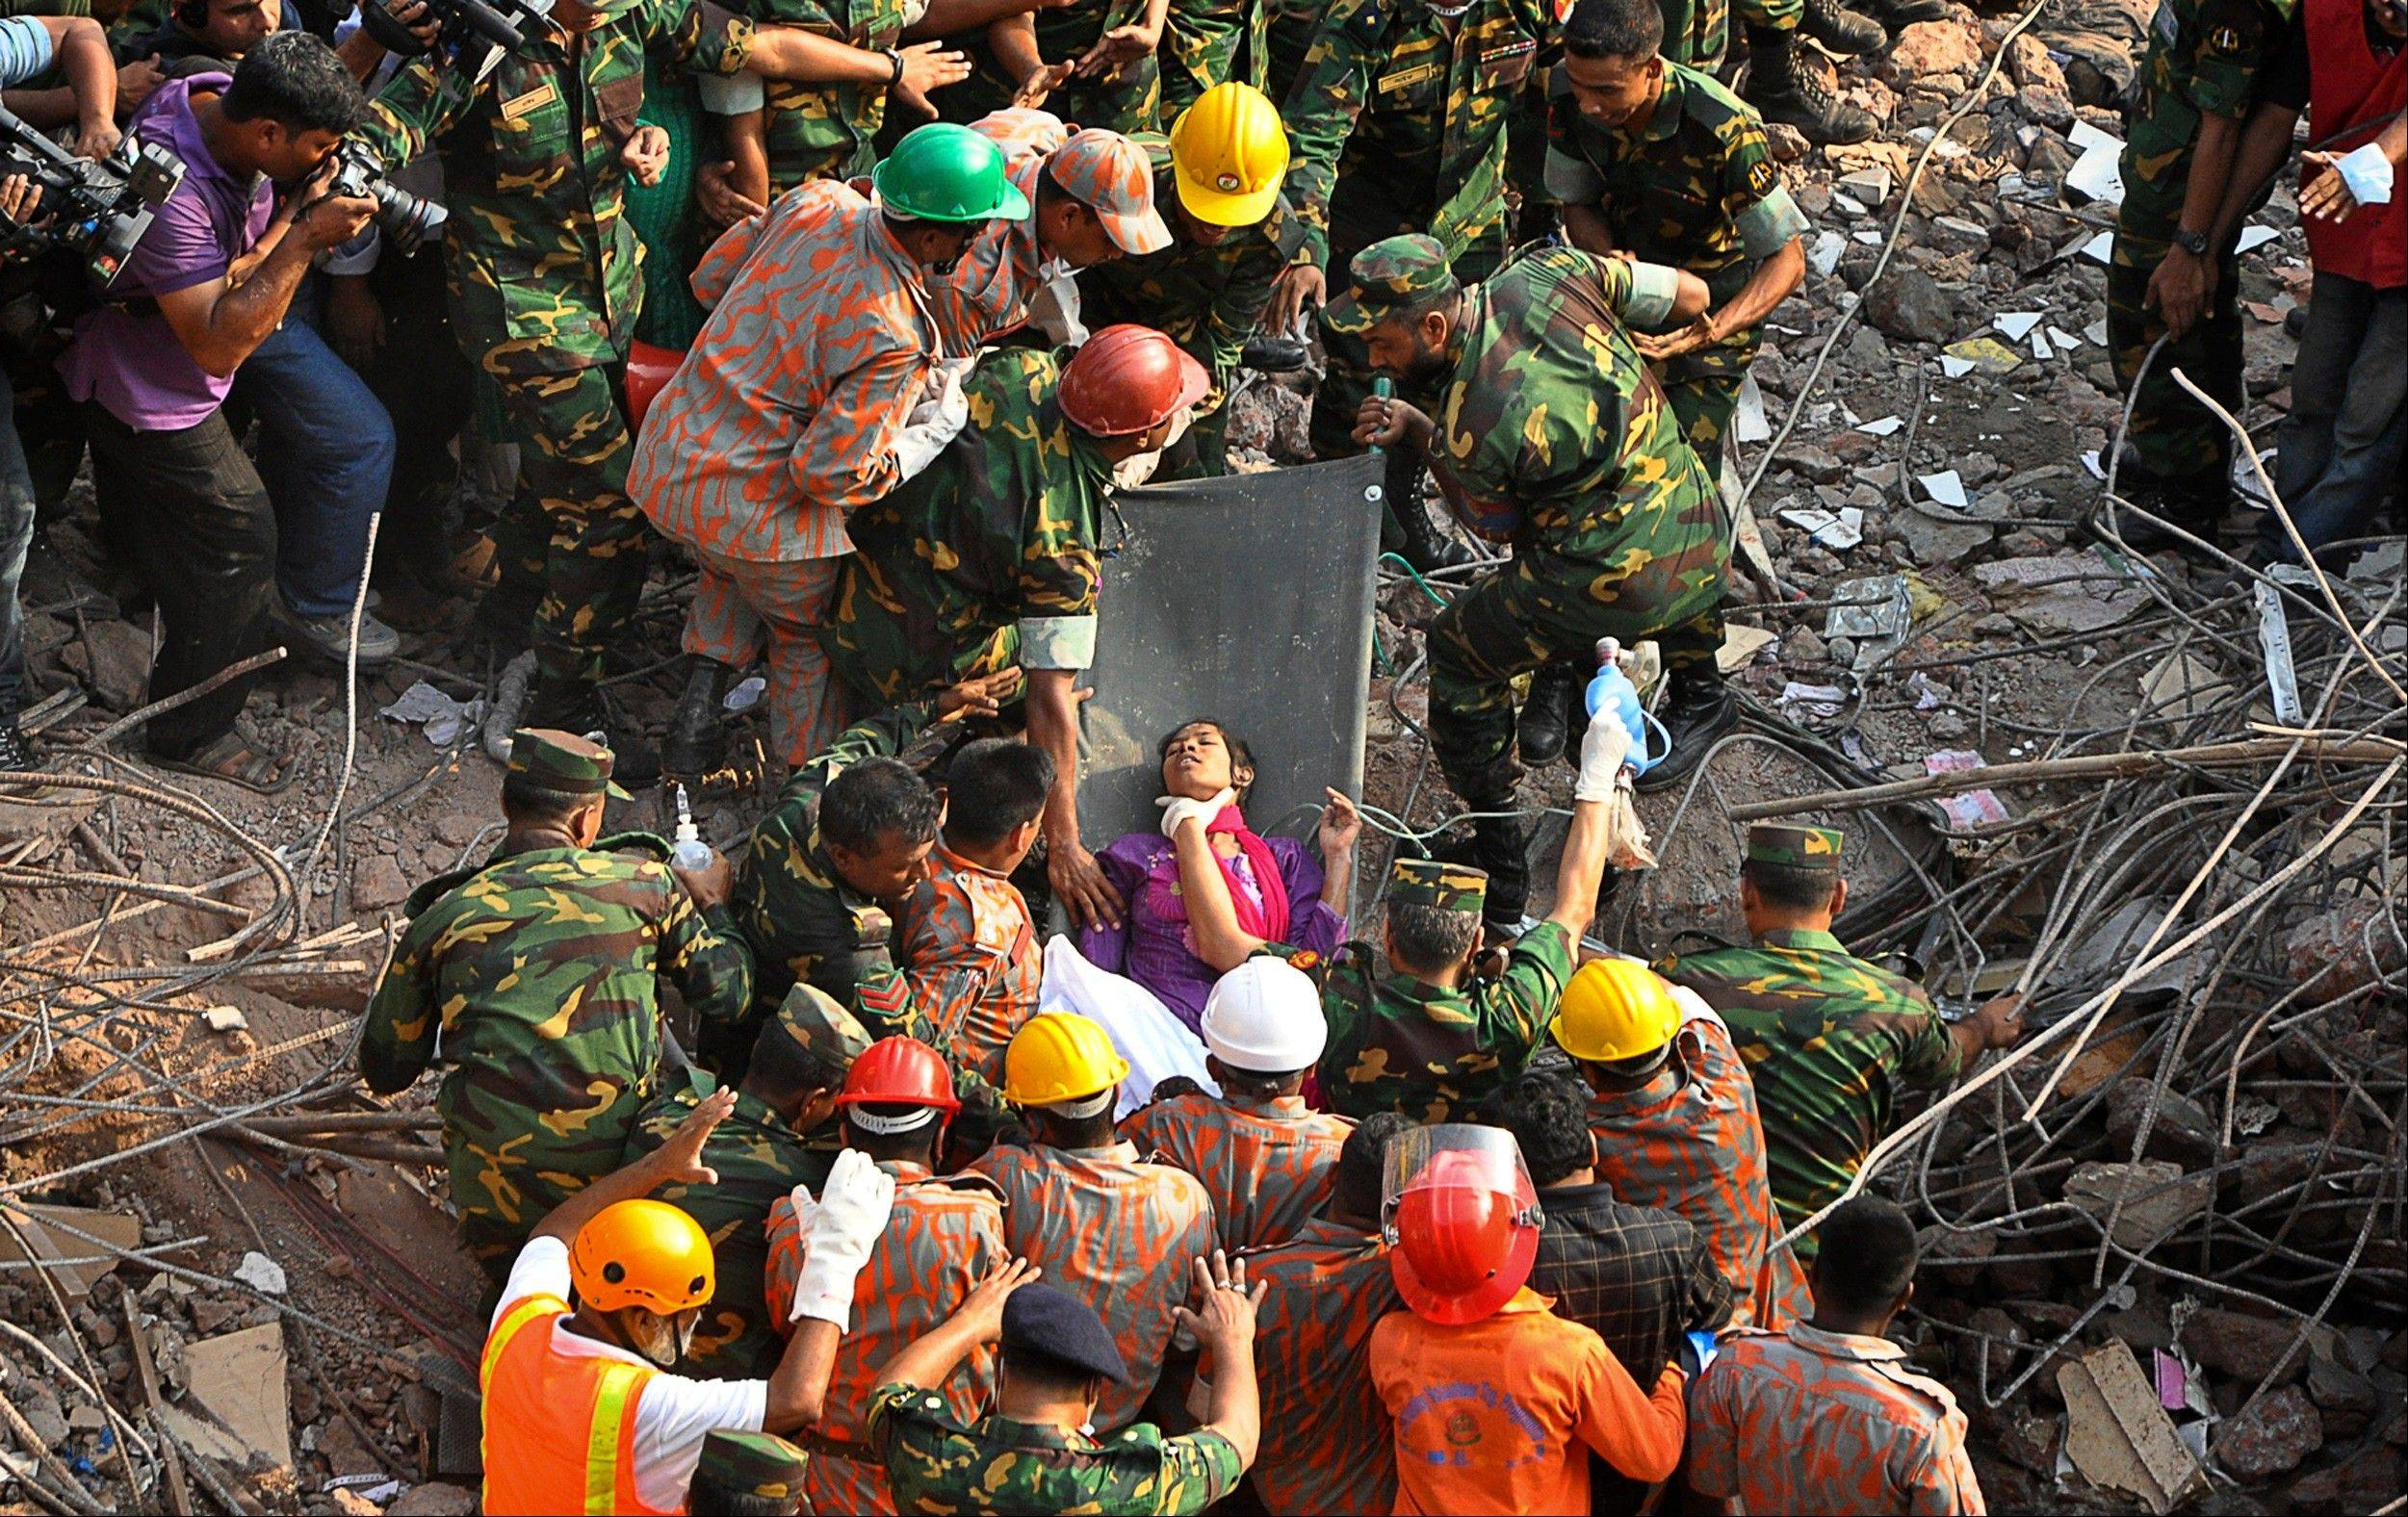 Rescuers carry a survivor pulled out from the rubble Friday of a building that collapsed in Saver, near Dhaka, Bangladesh. Rescue workers in Bangladesh freed the woman buried for 17 days inside the wreckage of a garment factory building that collapsed, killing more than 1,000 people. Soldiers at the site said her name was Reshma and described her as being in remarkably good shape despite her ordeal.